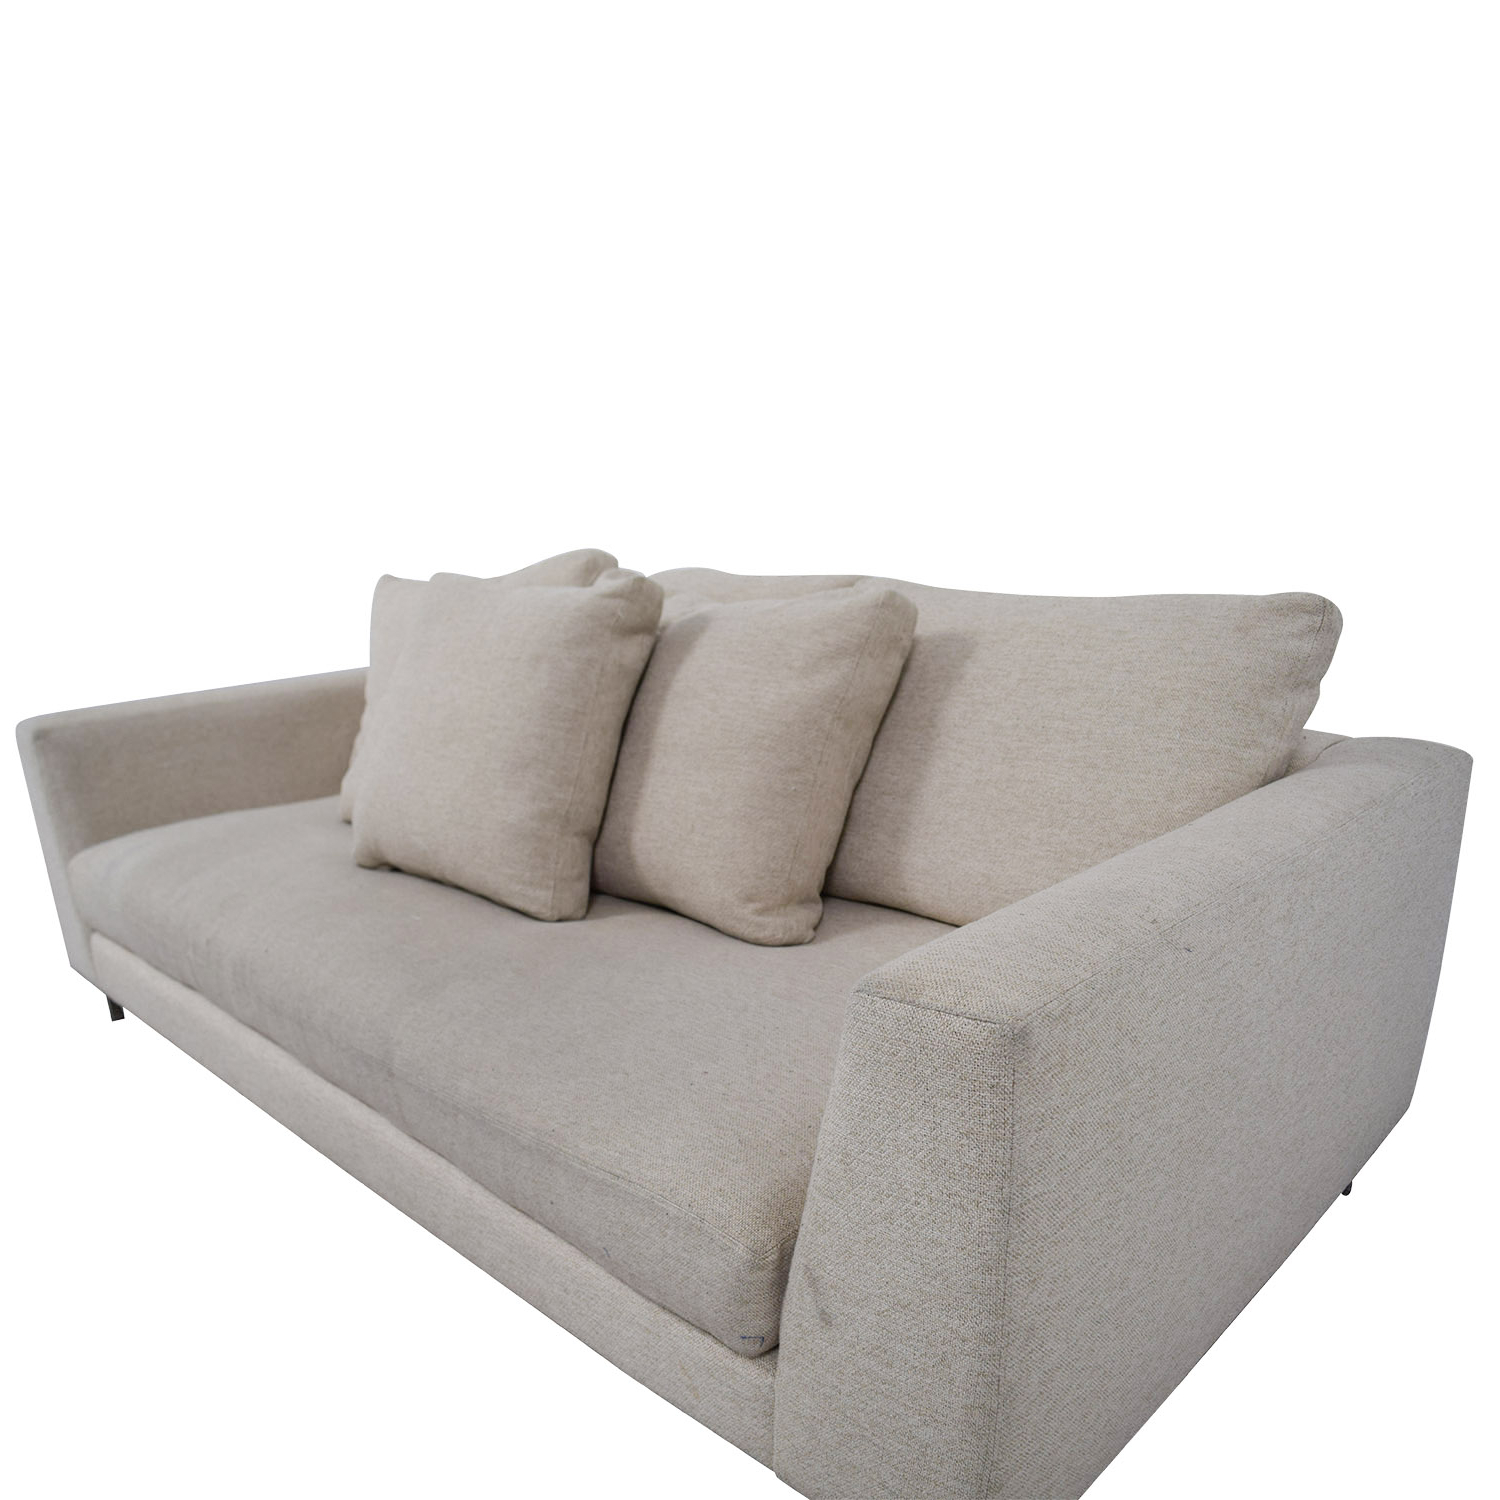 [%89% Off – Room & Board Room & Board Hayes Beige Single With 2017 Beige Sofas Beige Sofas Pertaining To Preferred 89% Off – Room & Board Room & Board Hayes Beige Single Latest Beige Sofas Pertaining To 89% Off – Room & Board Room & Board Hayes Beige Single Most Up To Date 89% Off – Room & Board Room & Board Hayes Beige Single Pertaining To Beige Sofas%] (View 8 of 15)